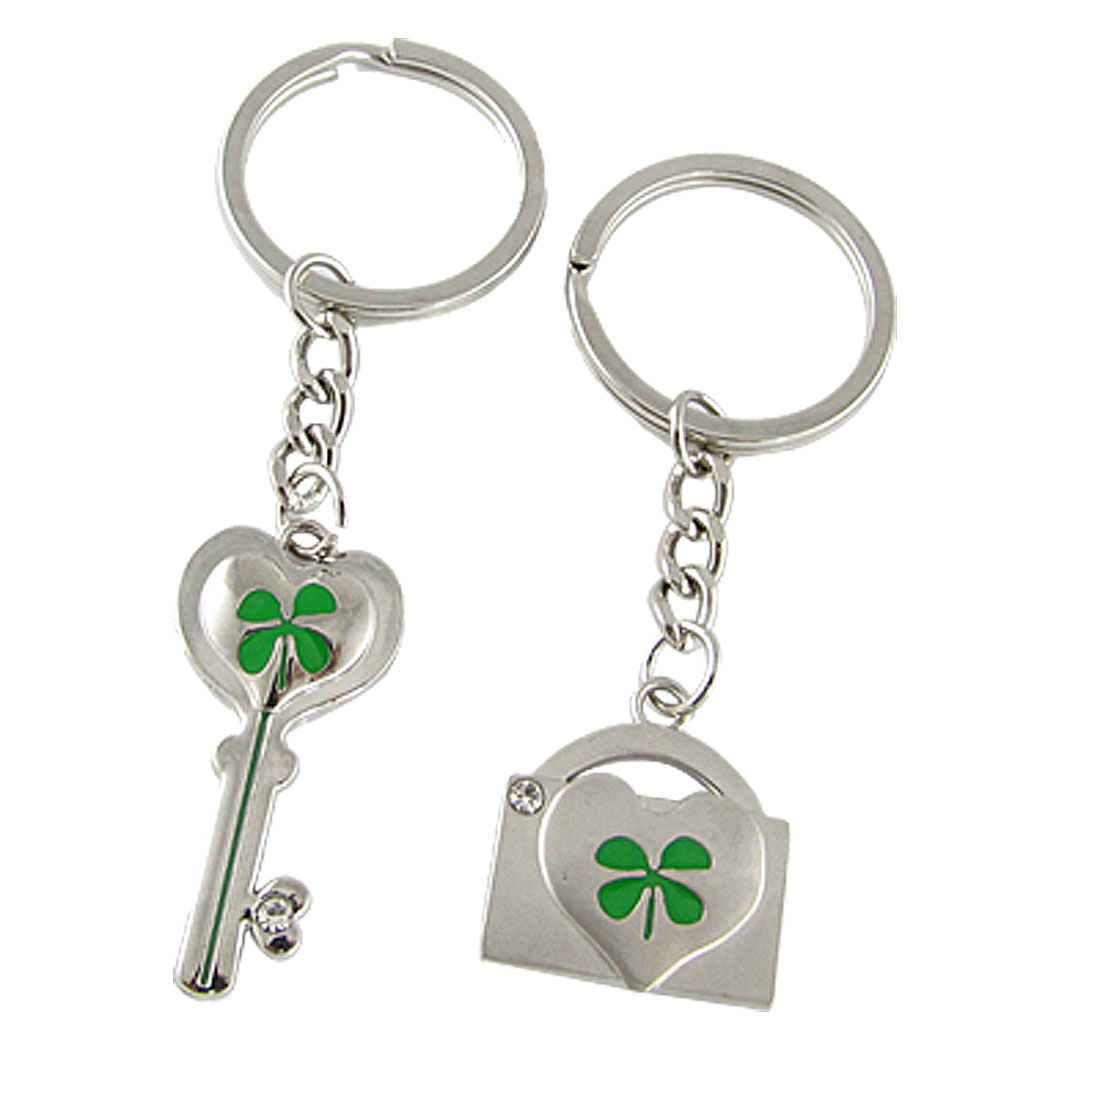 Pair of Clover Pattern Key and Key Lock Shaped Pendent Lovers Keychain